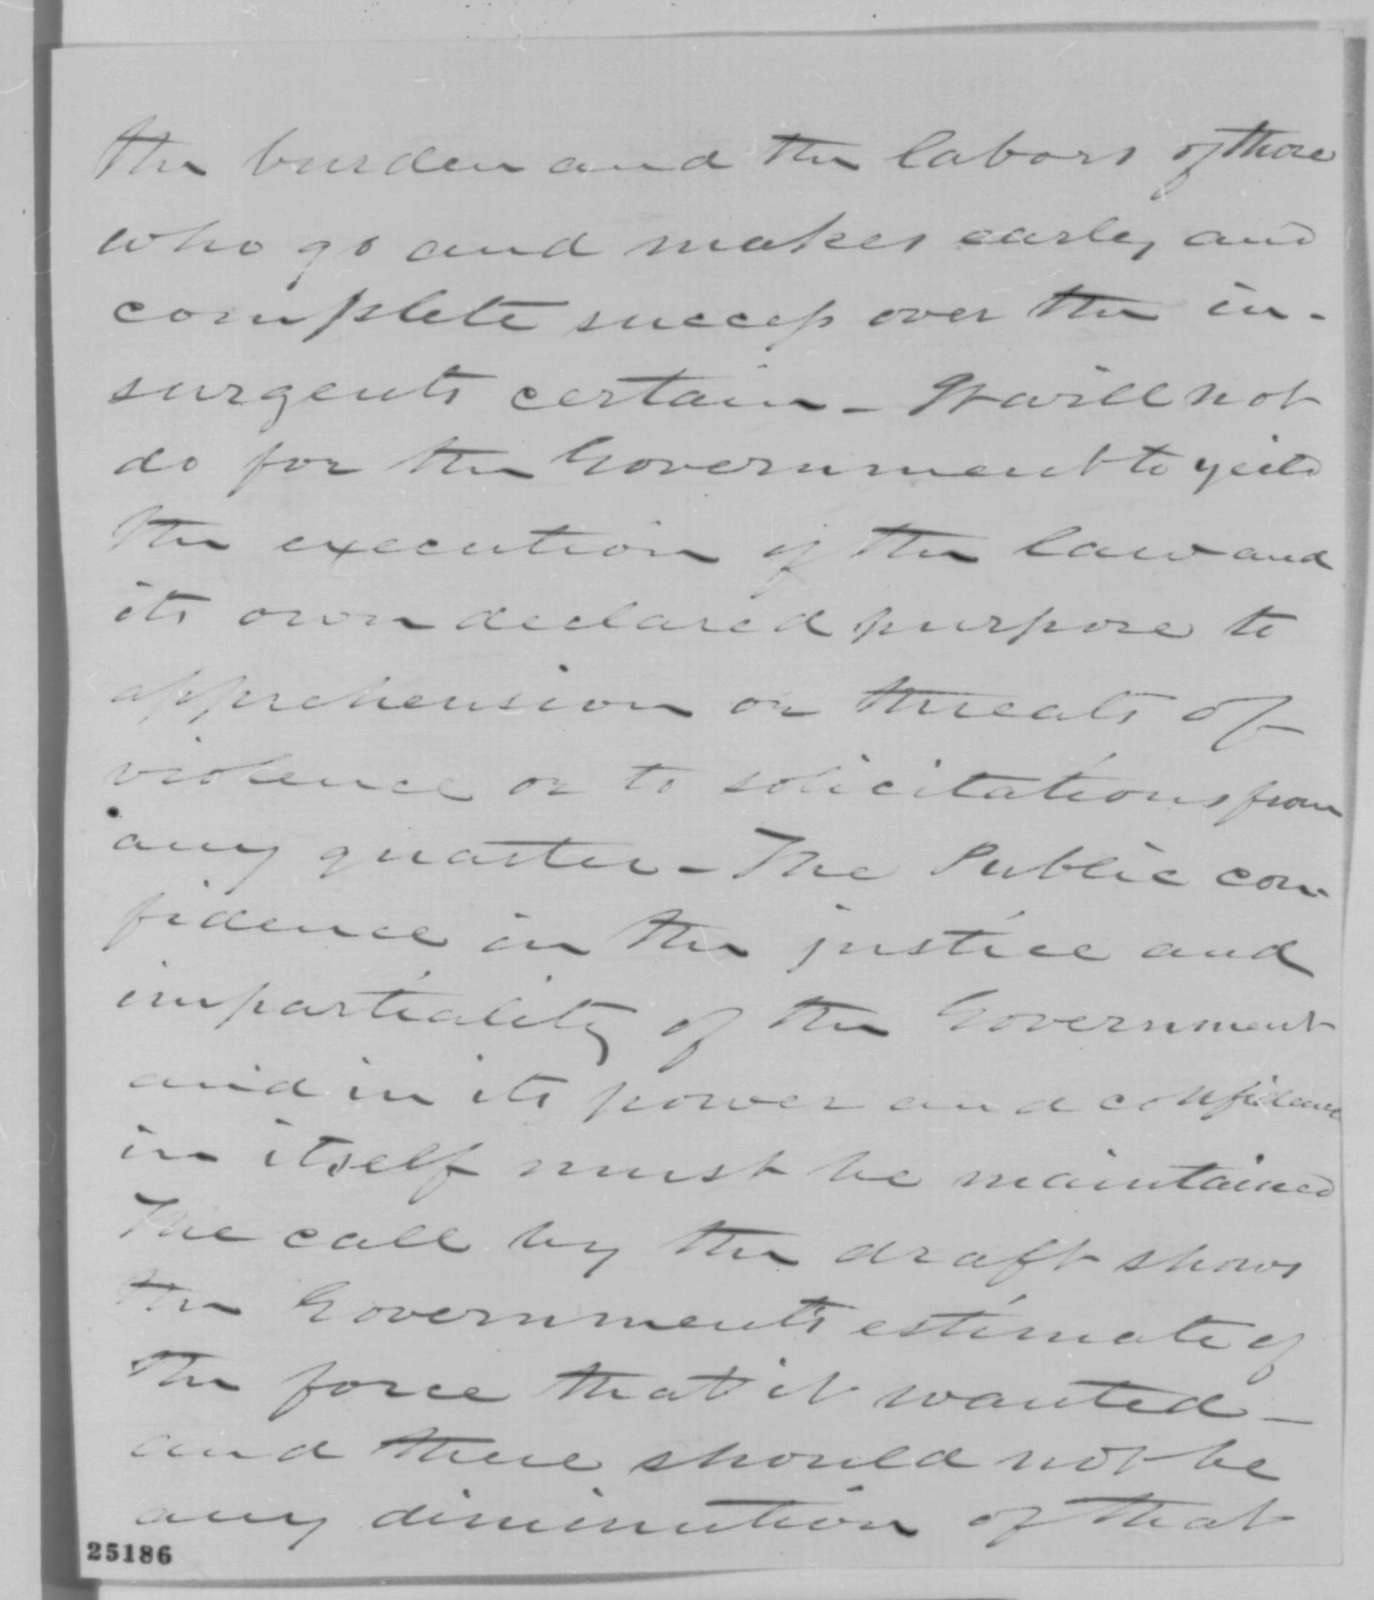 Preston King to Abraham Lincoln, Wednesday, July 29, 1863  (Support for the draft)